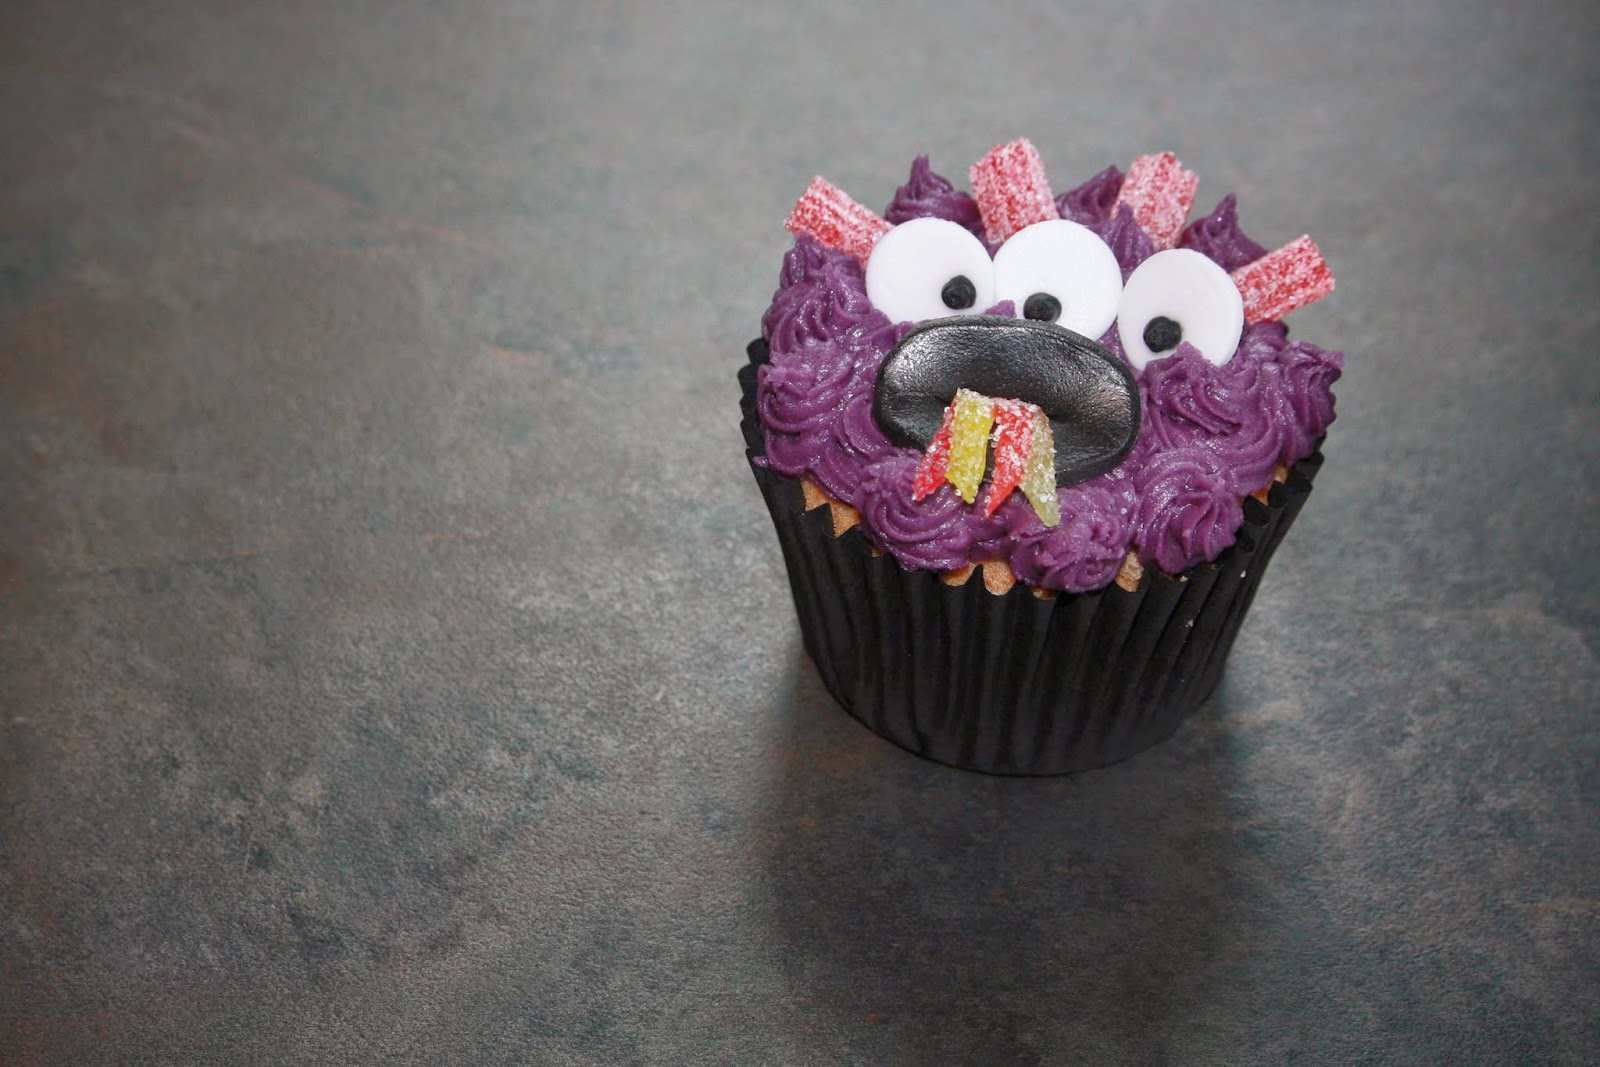 Purple monster cupcake sticking out his multi-coloured tongue!